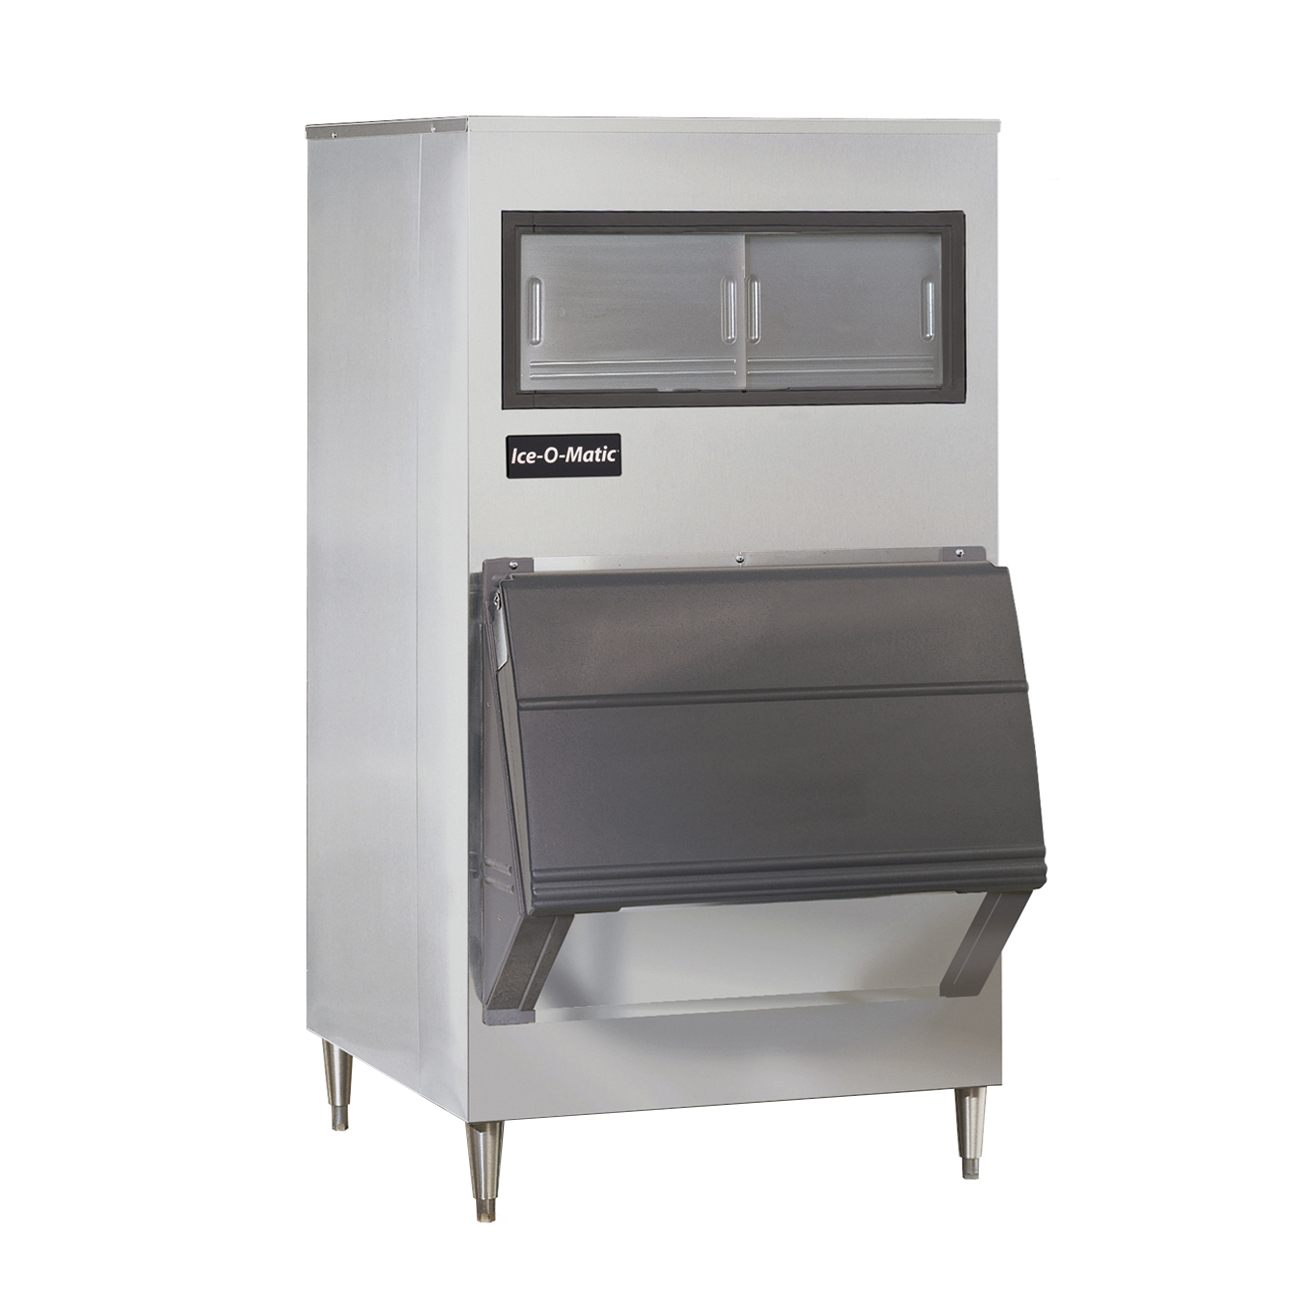 Ice-O-Matic B700-30 ice bin for ice machines